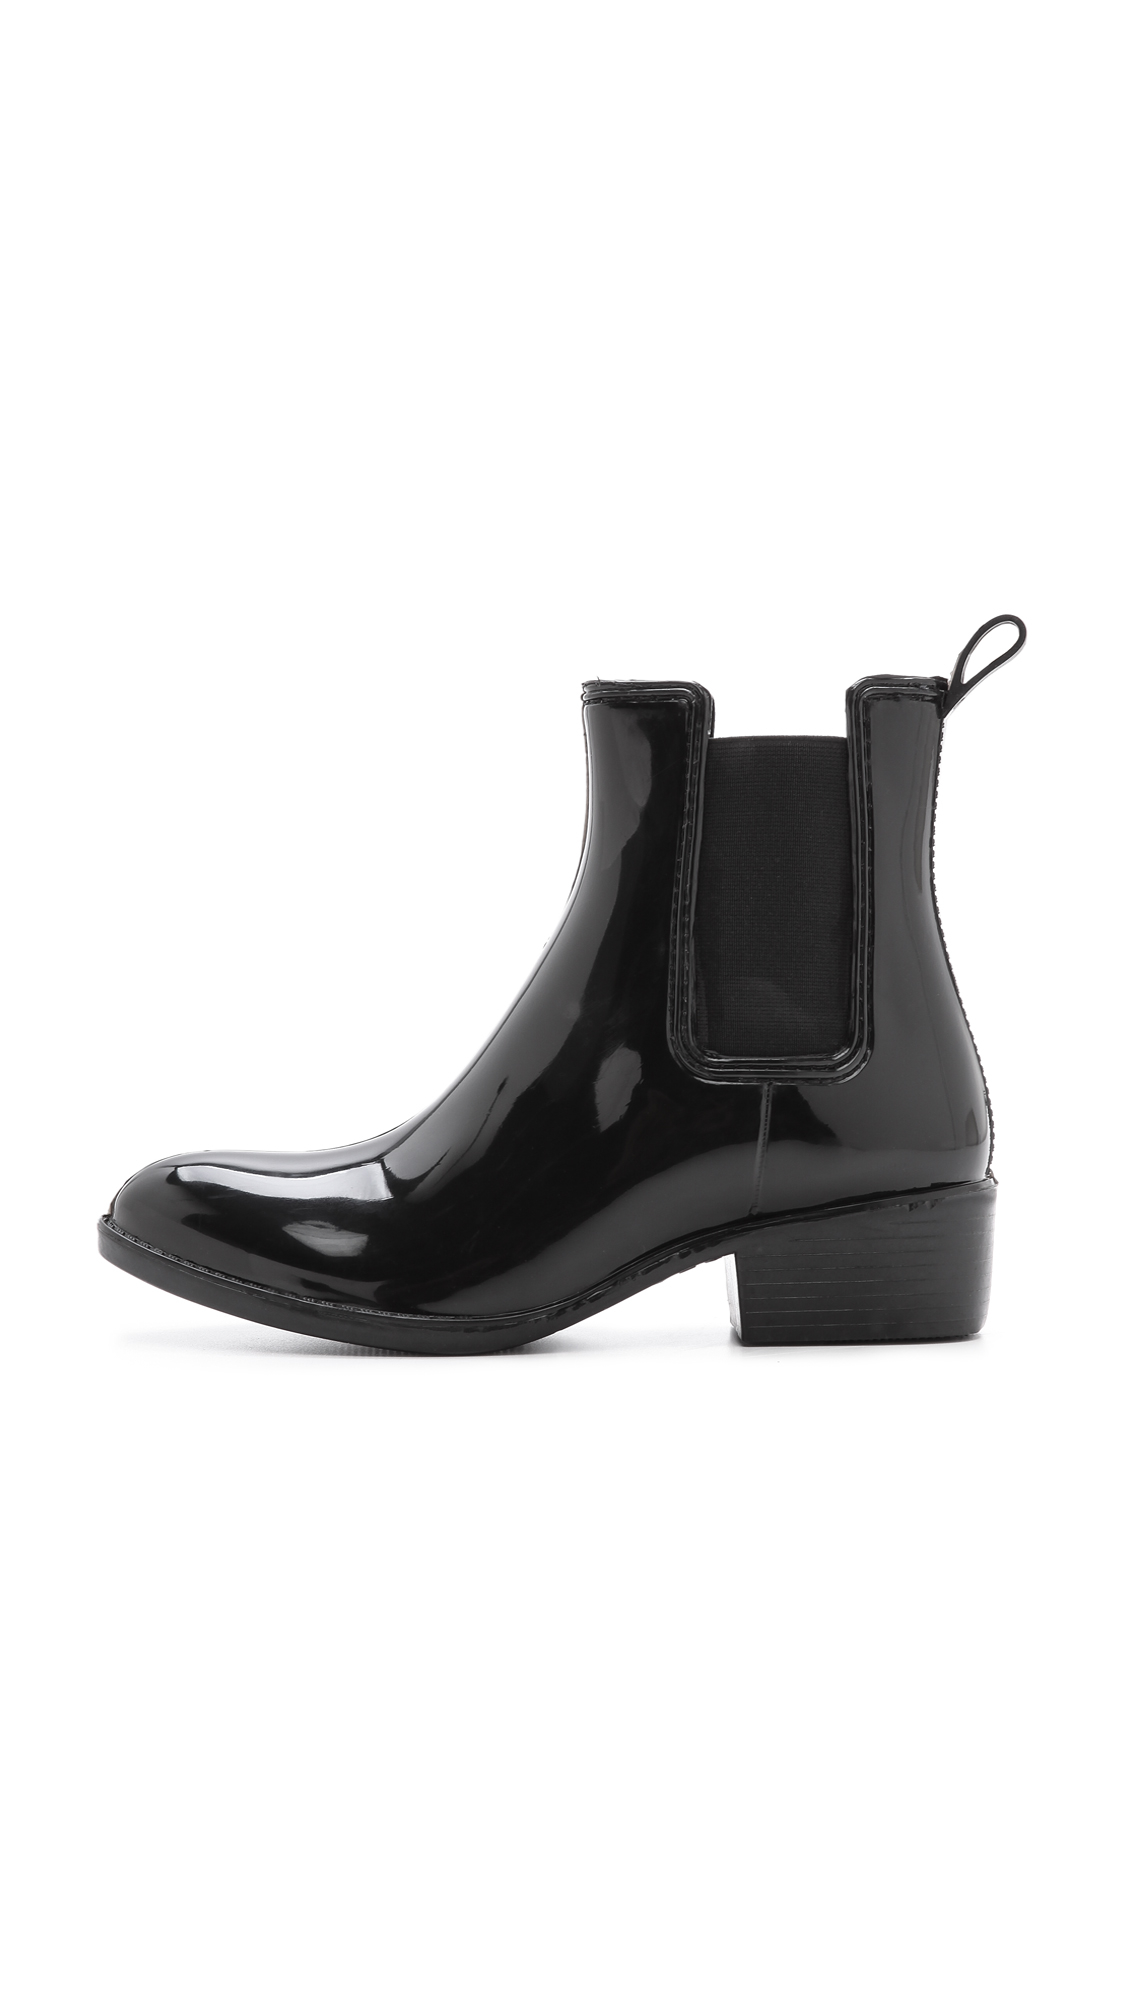 Jeffrey Campbell Rubber Stormy Rain Booties in Black